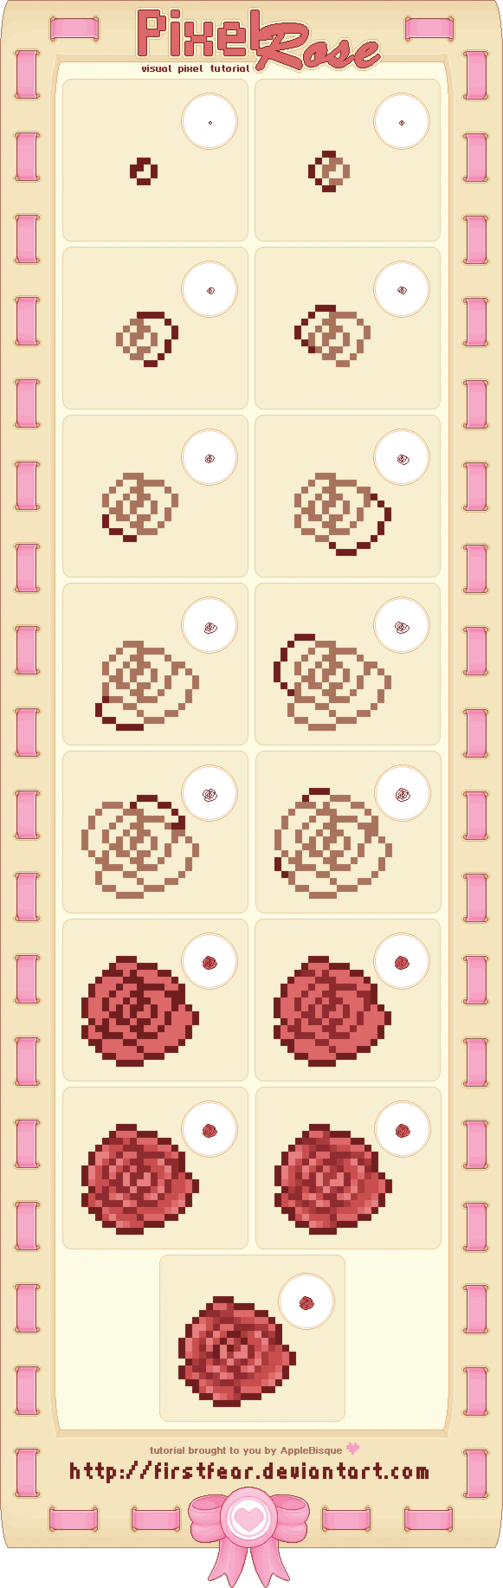 Tutorial  Pixel Rose By Firstfear